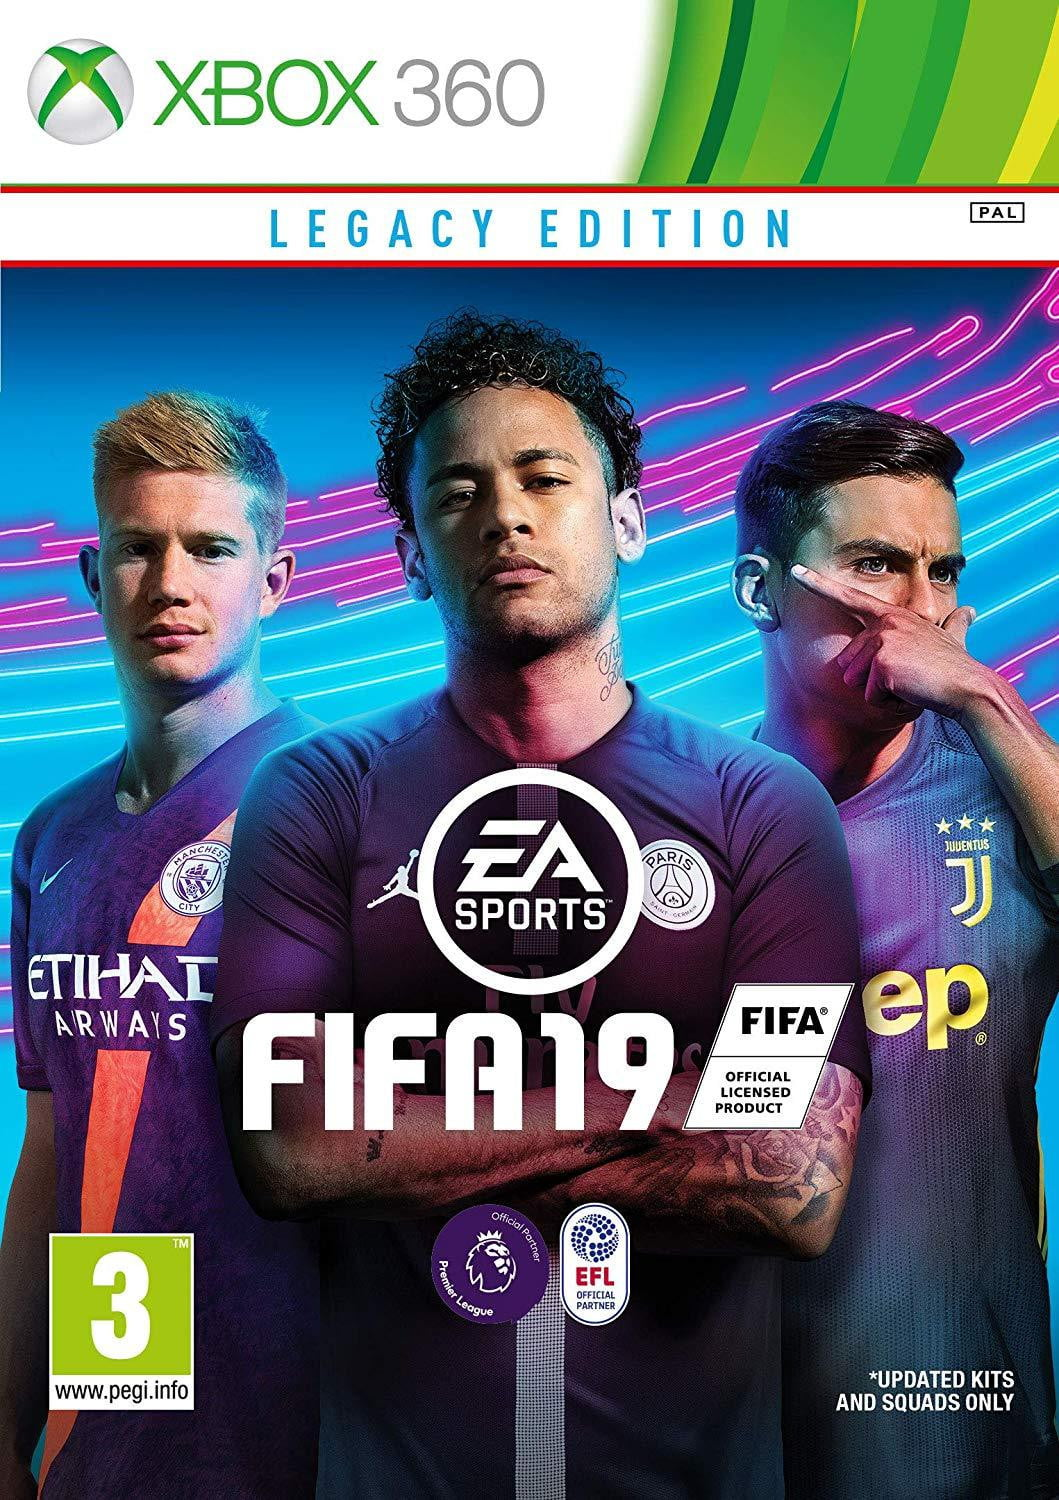 Buy FIFA 19 Legacy Edition (XBOX 360) XBOX 360 Game in Egypt - Shamy Stores